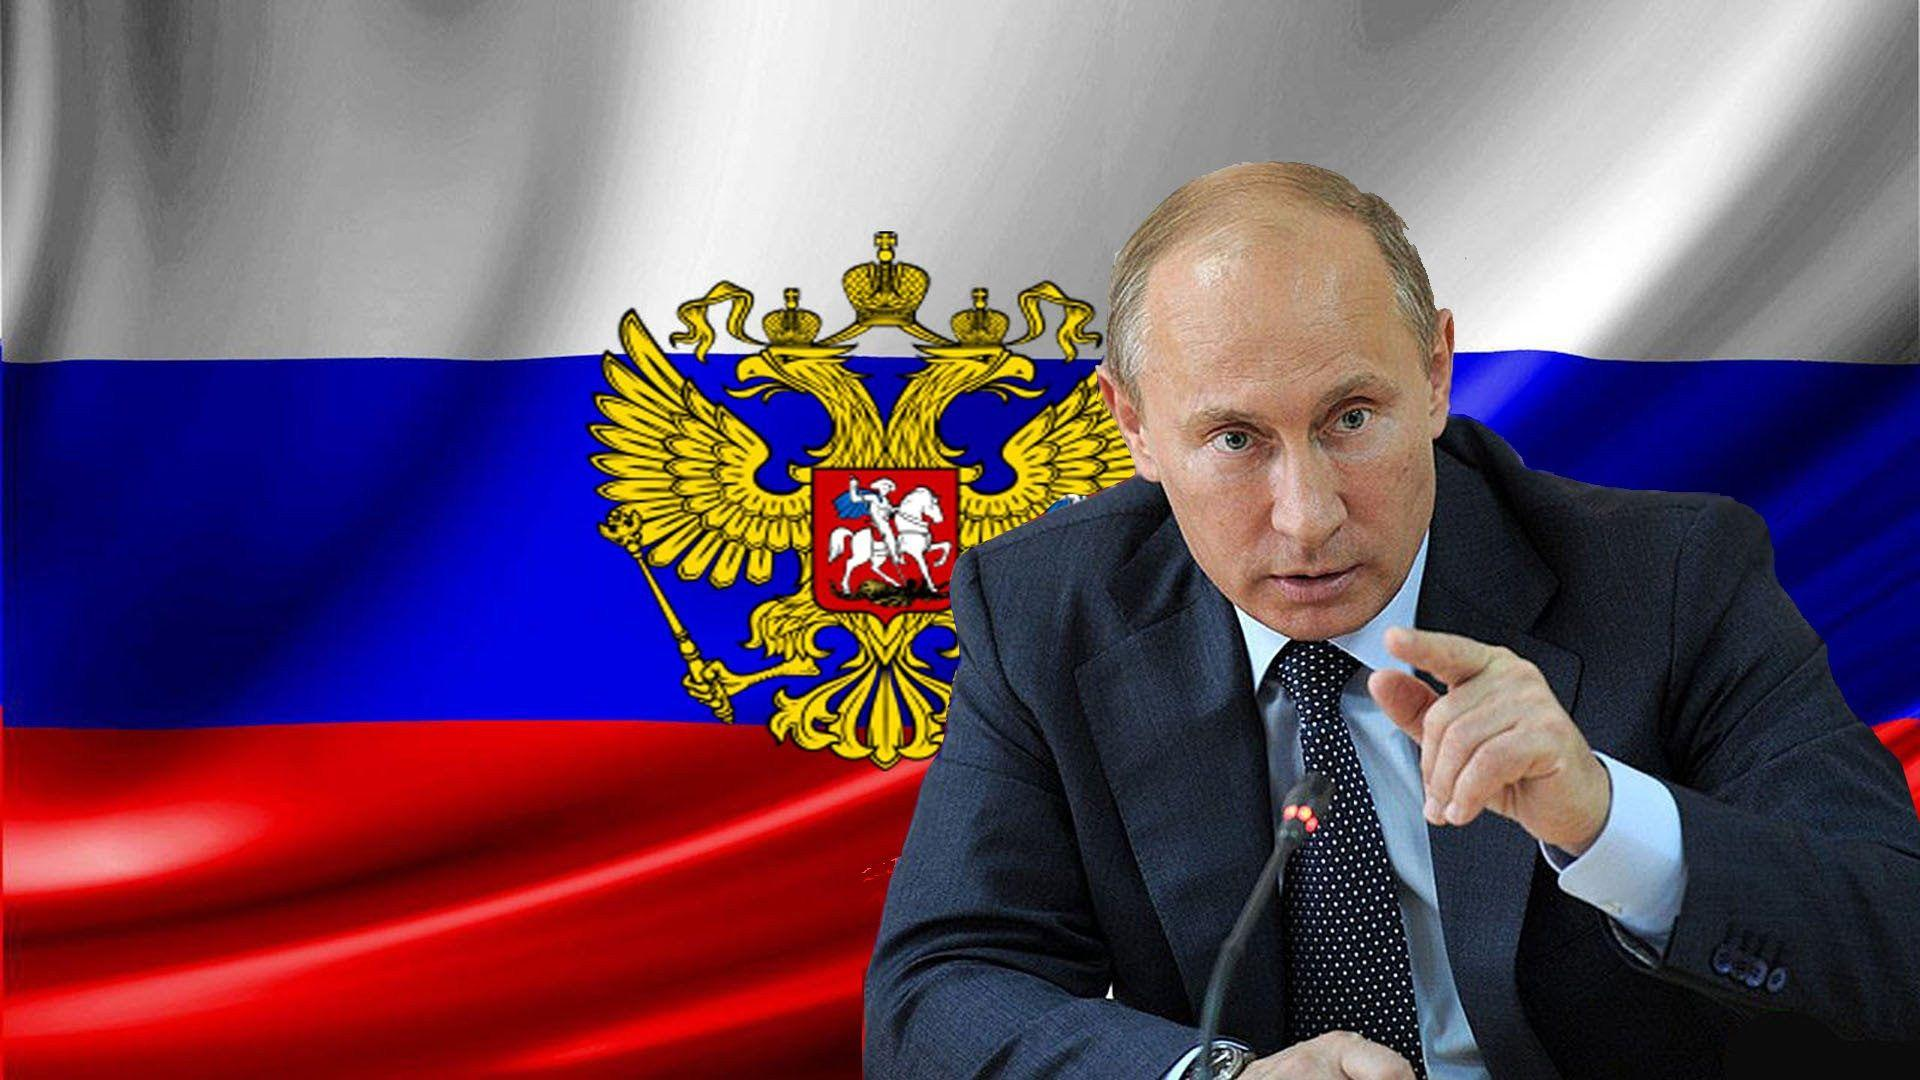 Vladimir Putin Wallpapers and Background Images - stmed.net